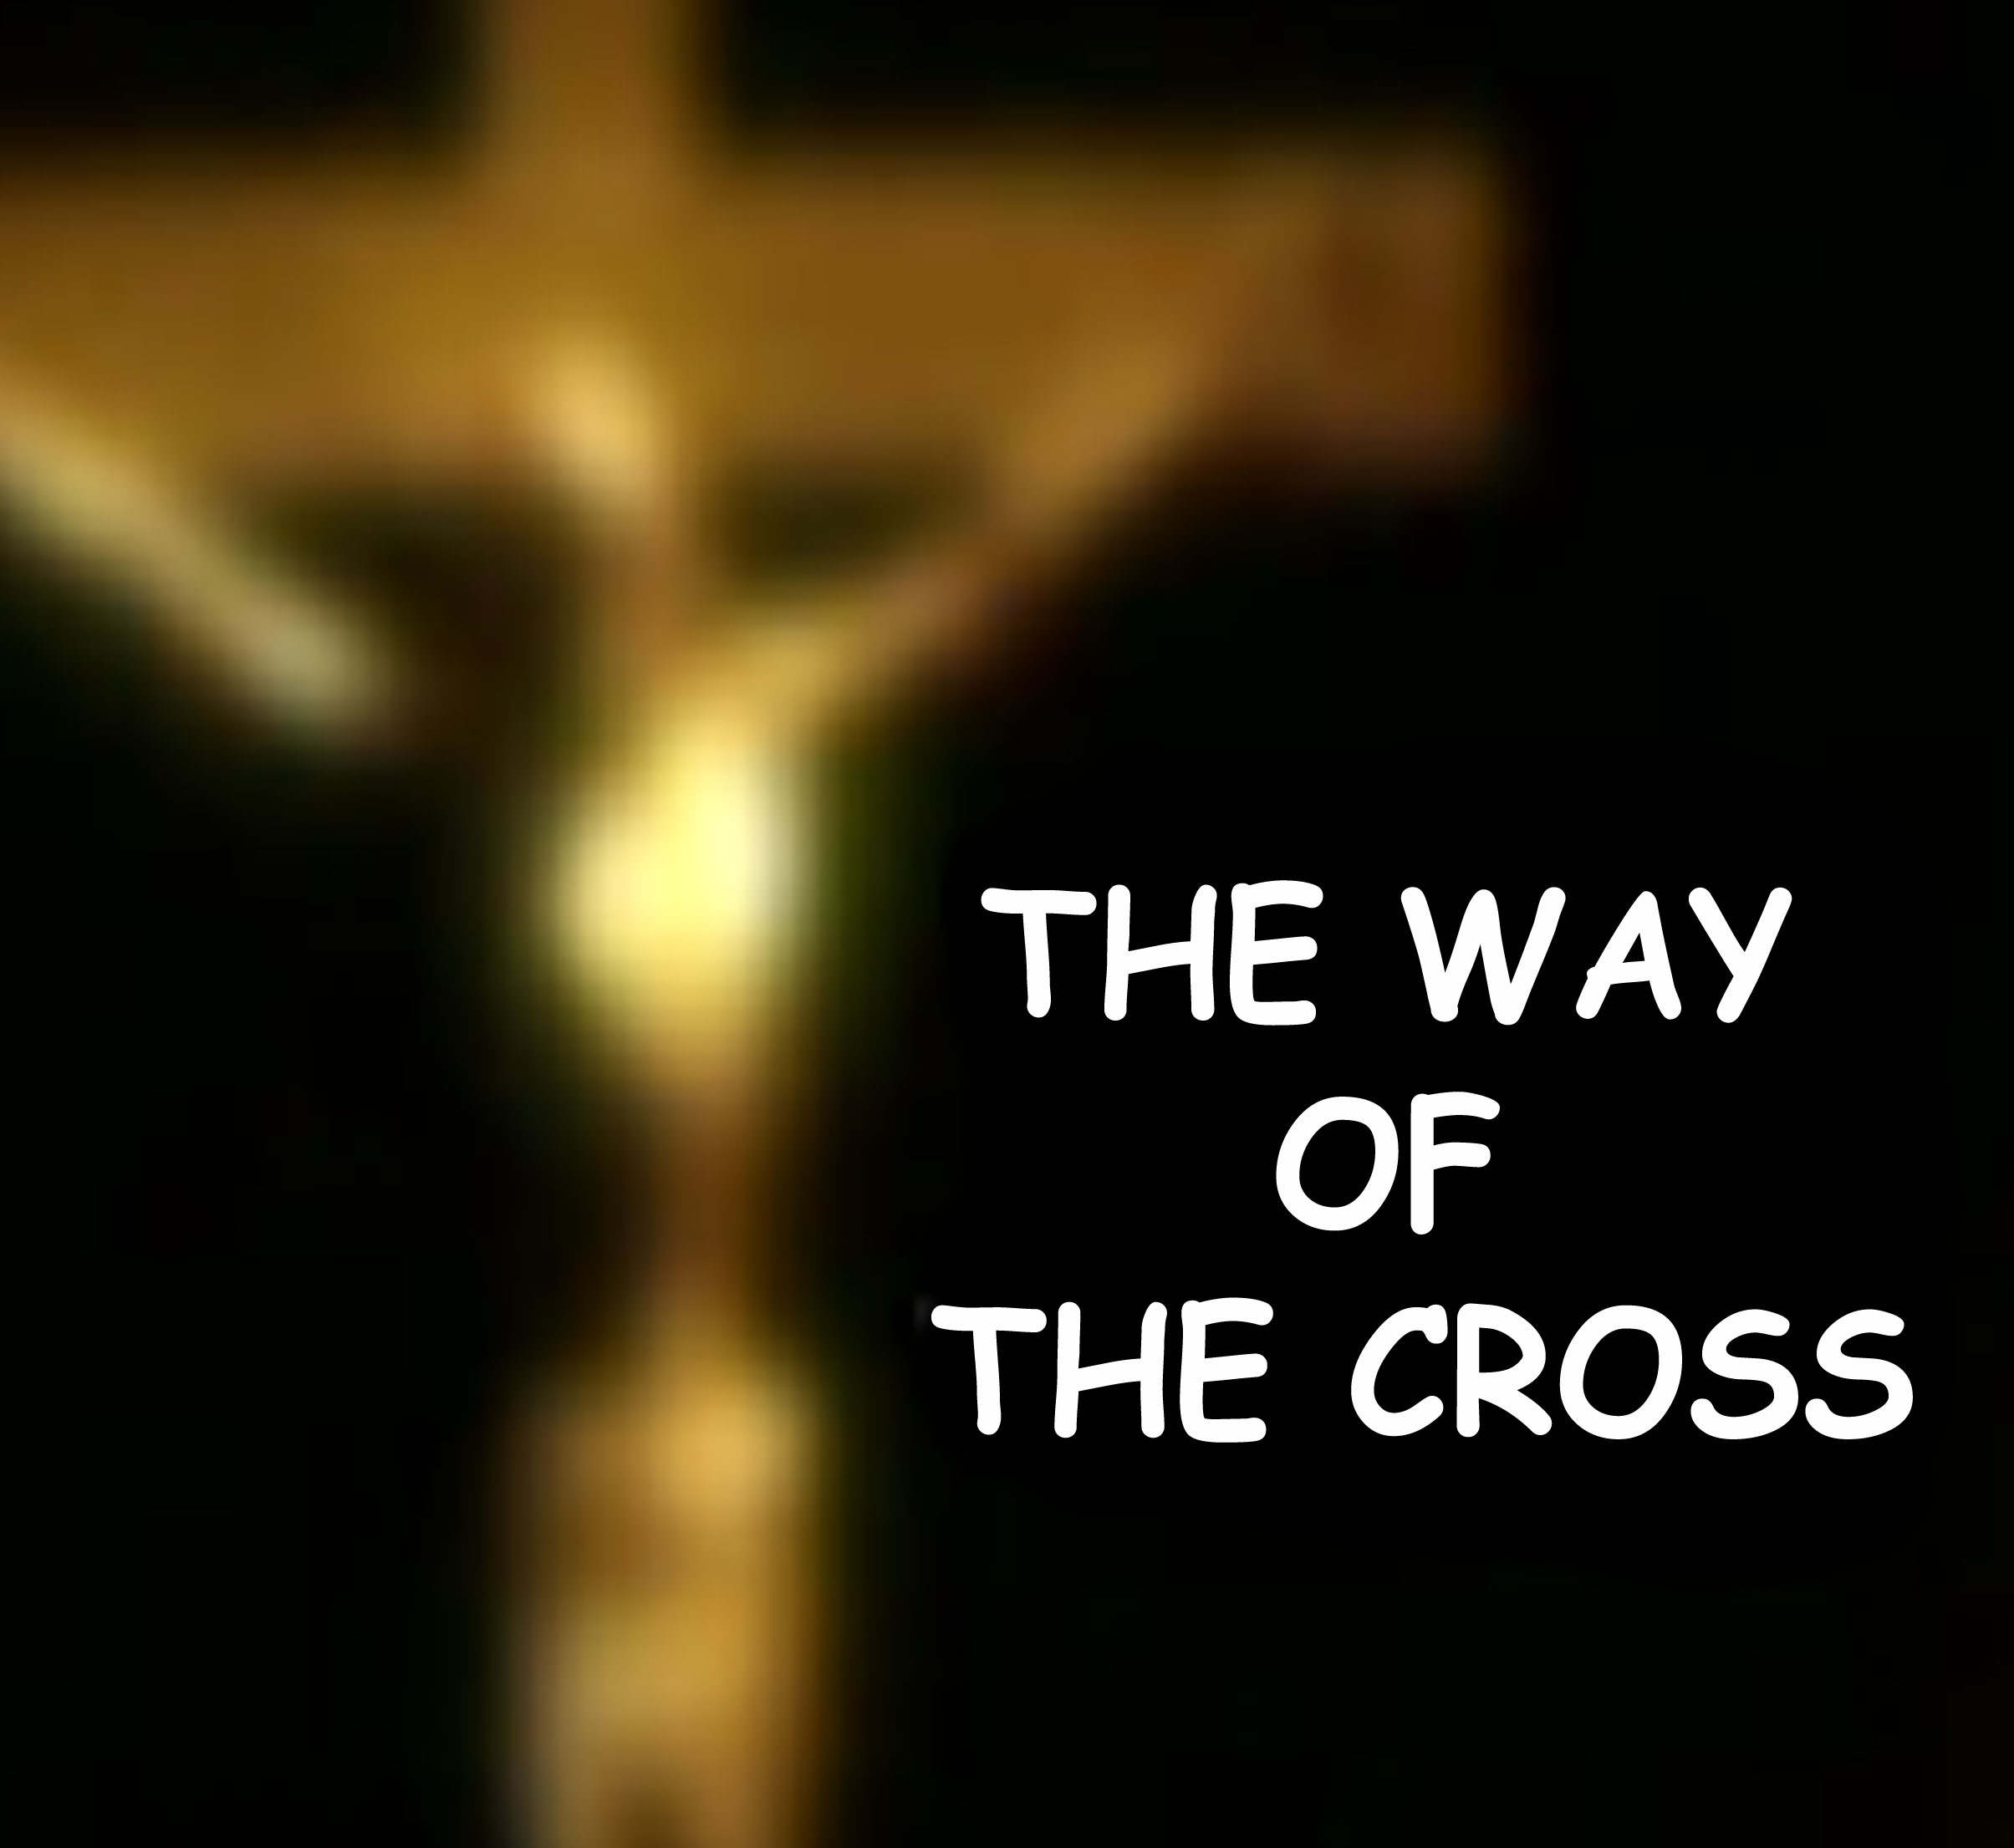 십자가의 길 the way of the cross